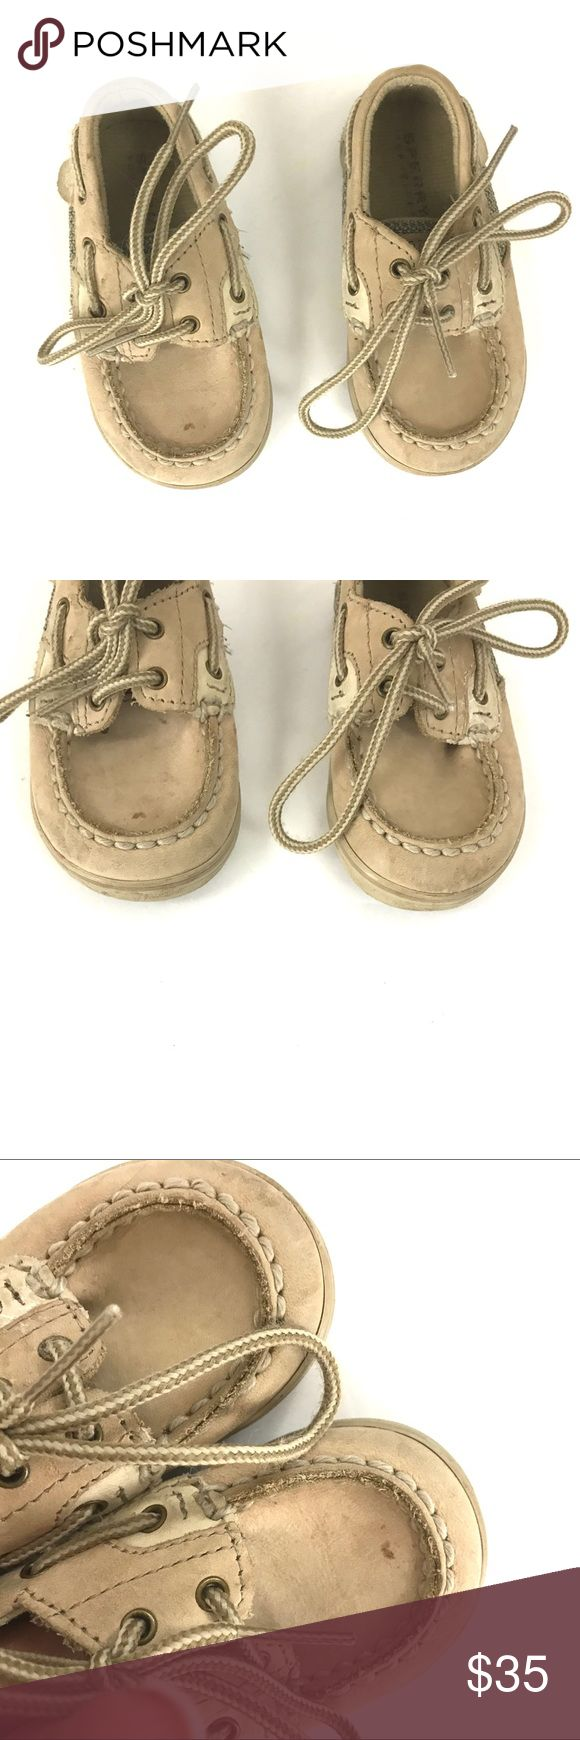 Baby sperry top sider brown boat shoes Classic style. Baby shoes. Size 3. Light wear to the overall shoe. Sperry Top-Sider Shoes Baby & Walker